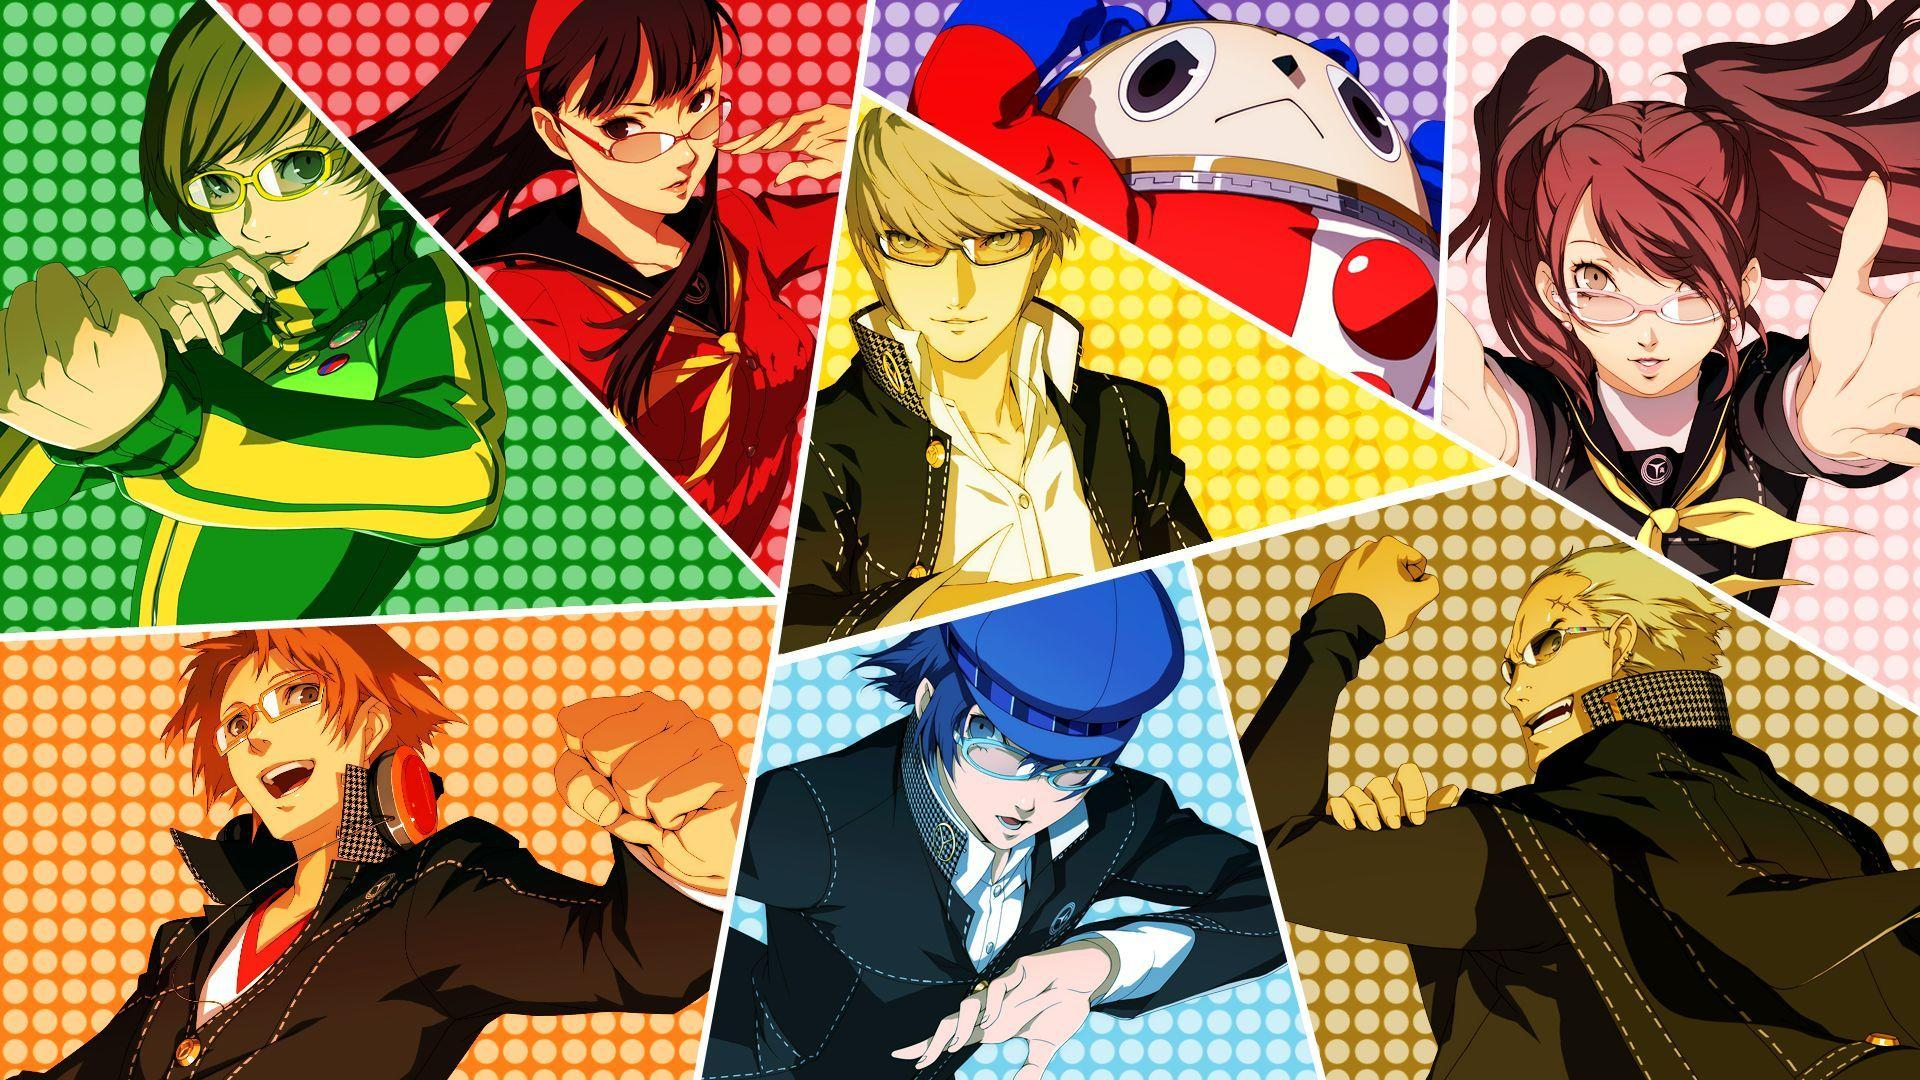 Persona 4 HD Wallpapers Free Download.